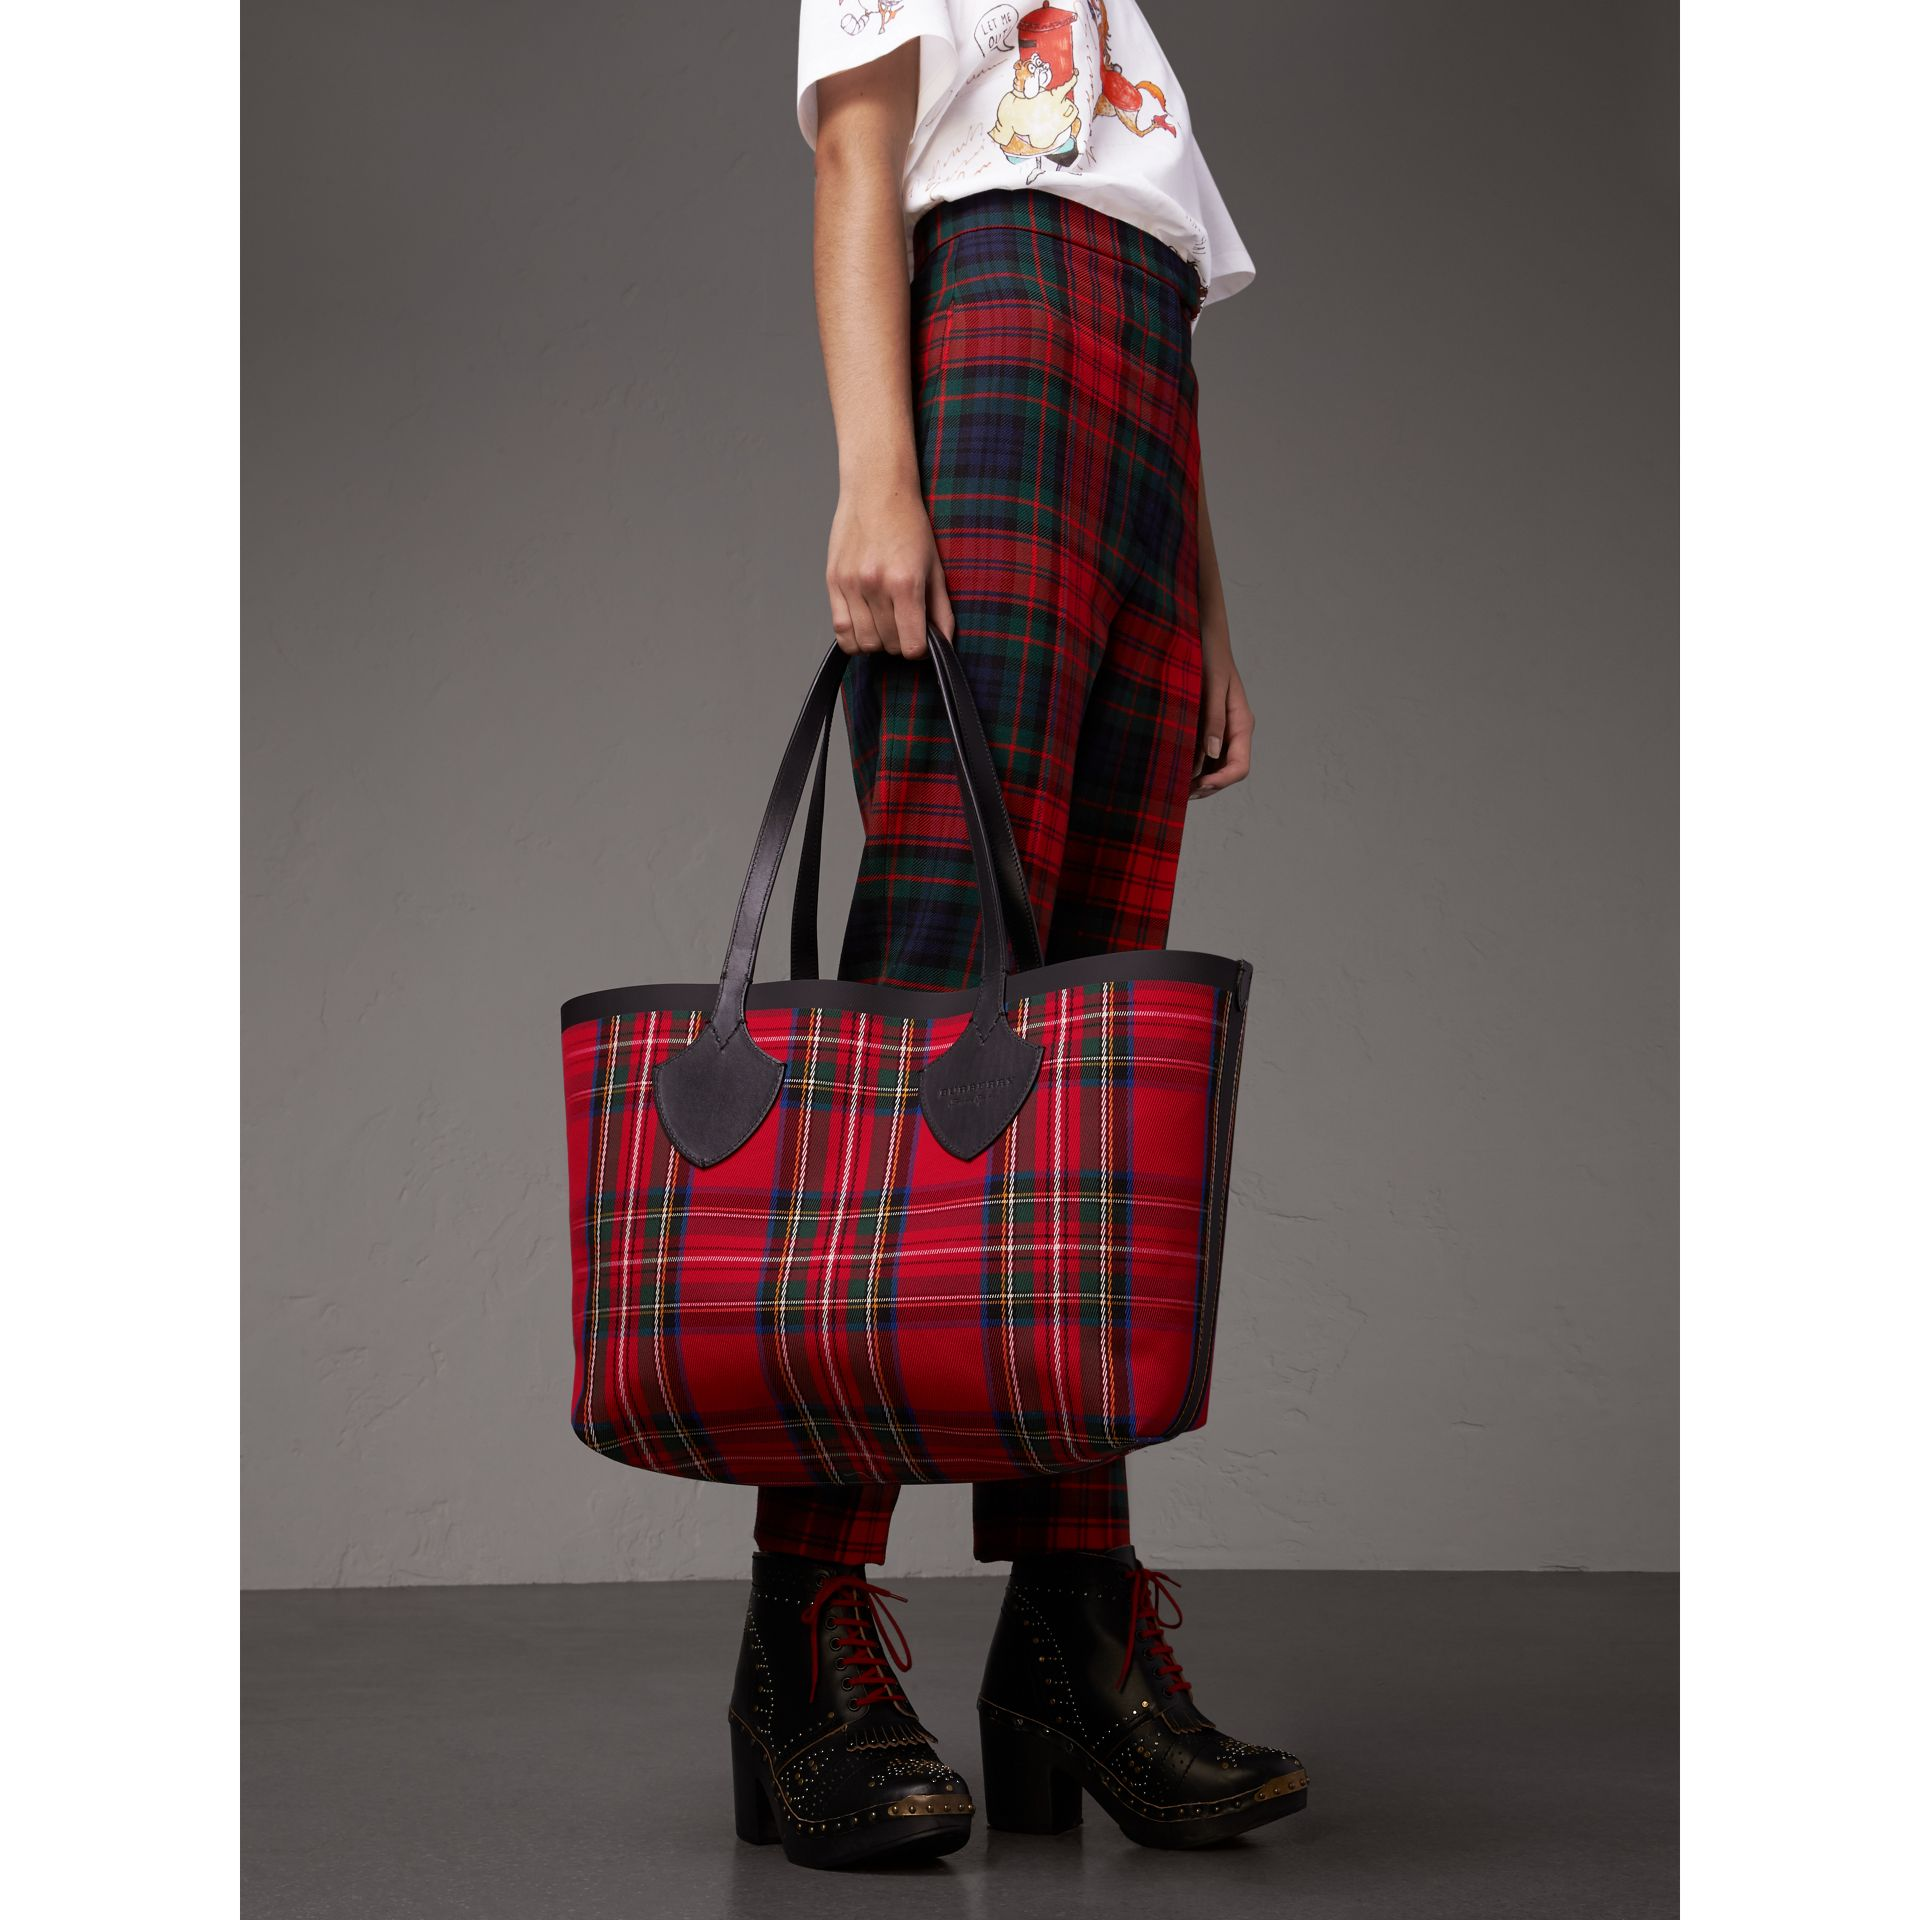 Sac tote The Giant moyen en Vintage check (Jaune Antique/rouge Vif) | Burberry - photo de la galerie 4